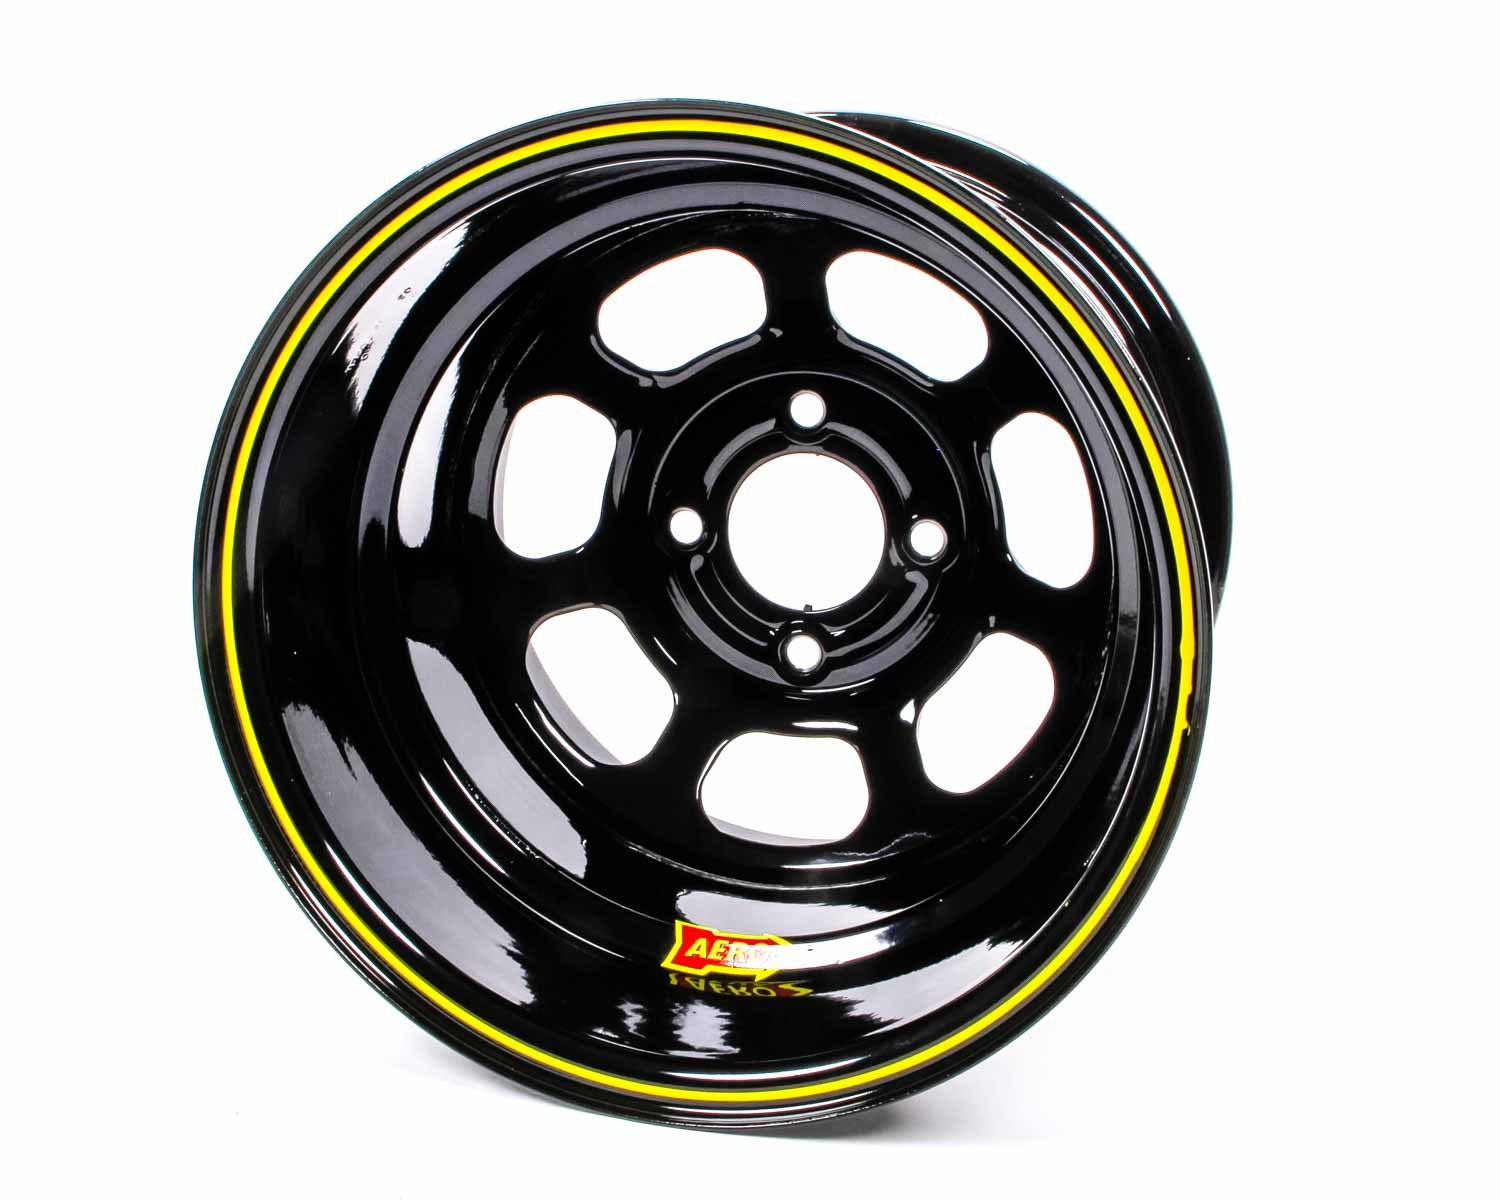 Aero Race 13x10 3in. 4.25 Black  Wheel